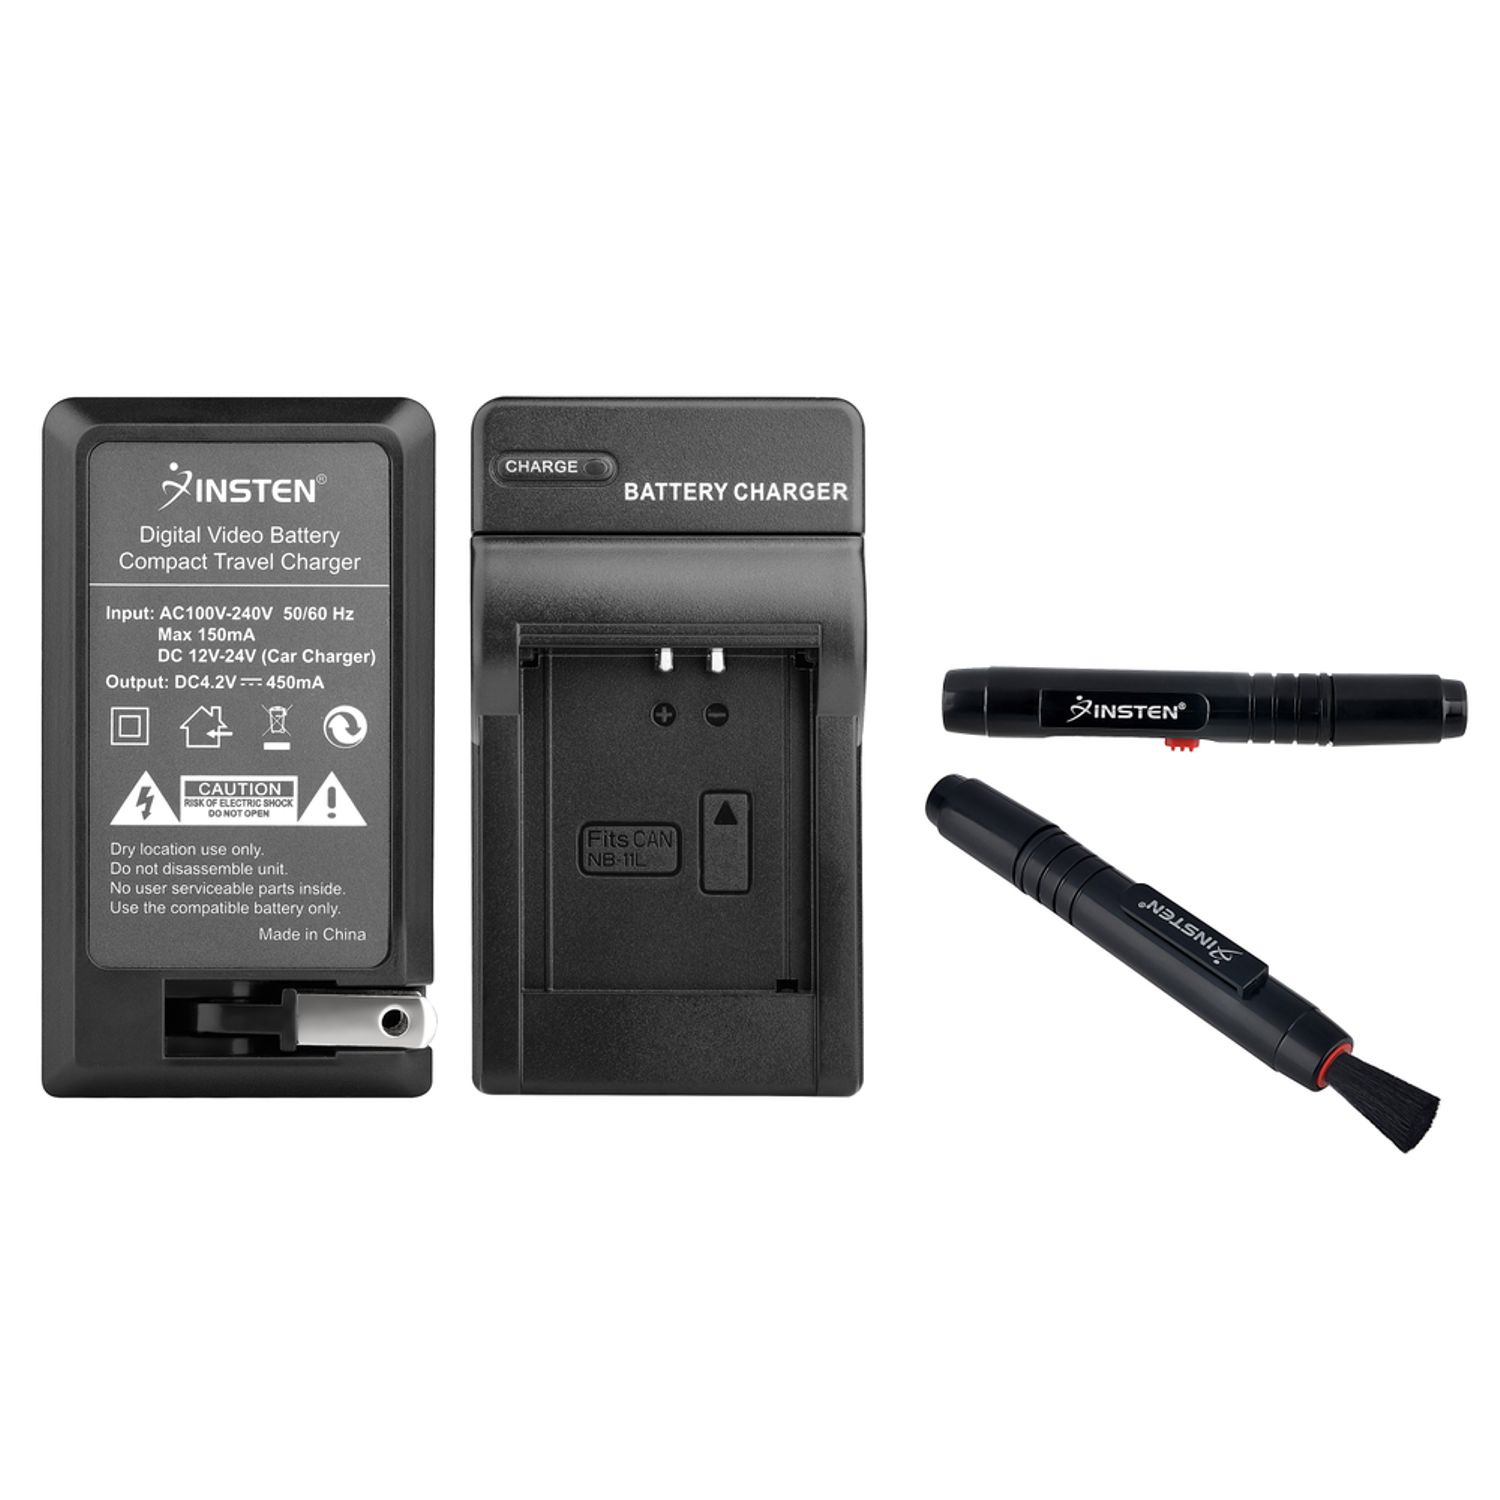 Insten Charger CB-2LD+Pen for NB-11L Canon PowerShot A2300 A2400 A3400 A4000 IS Camera